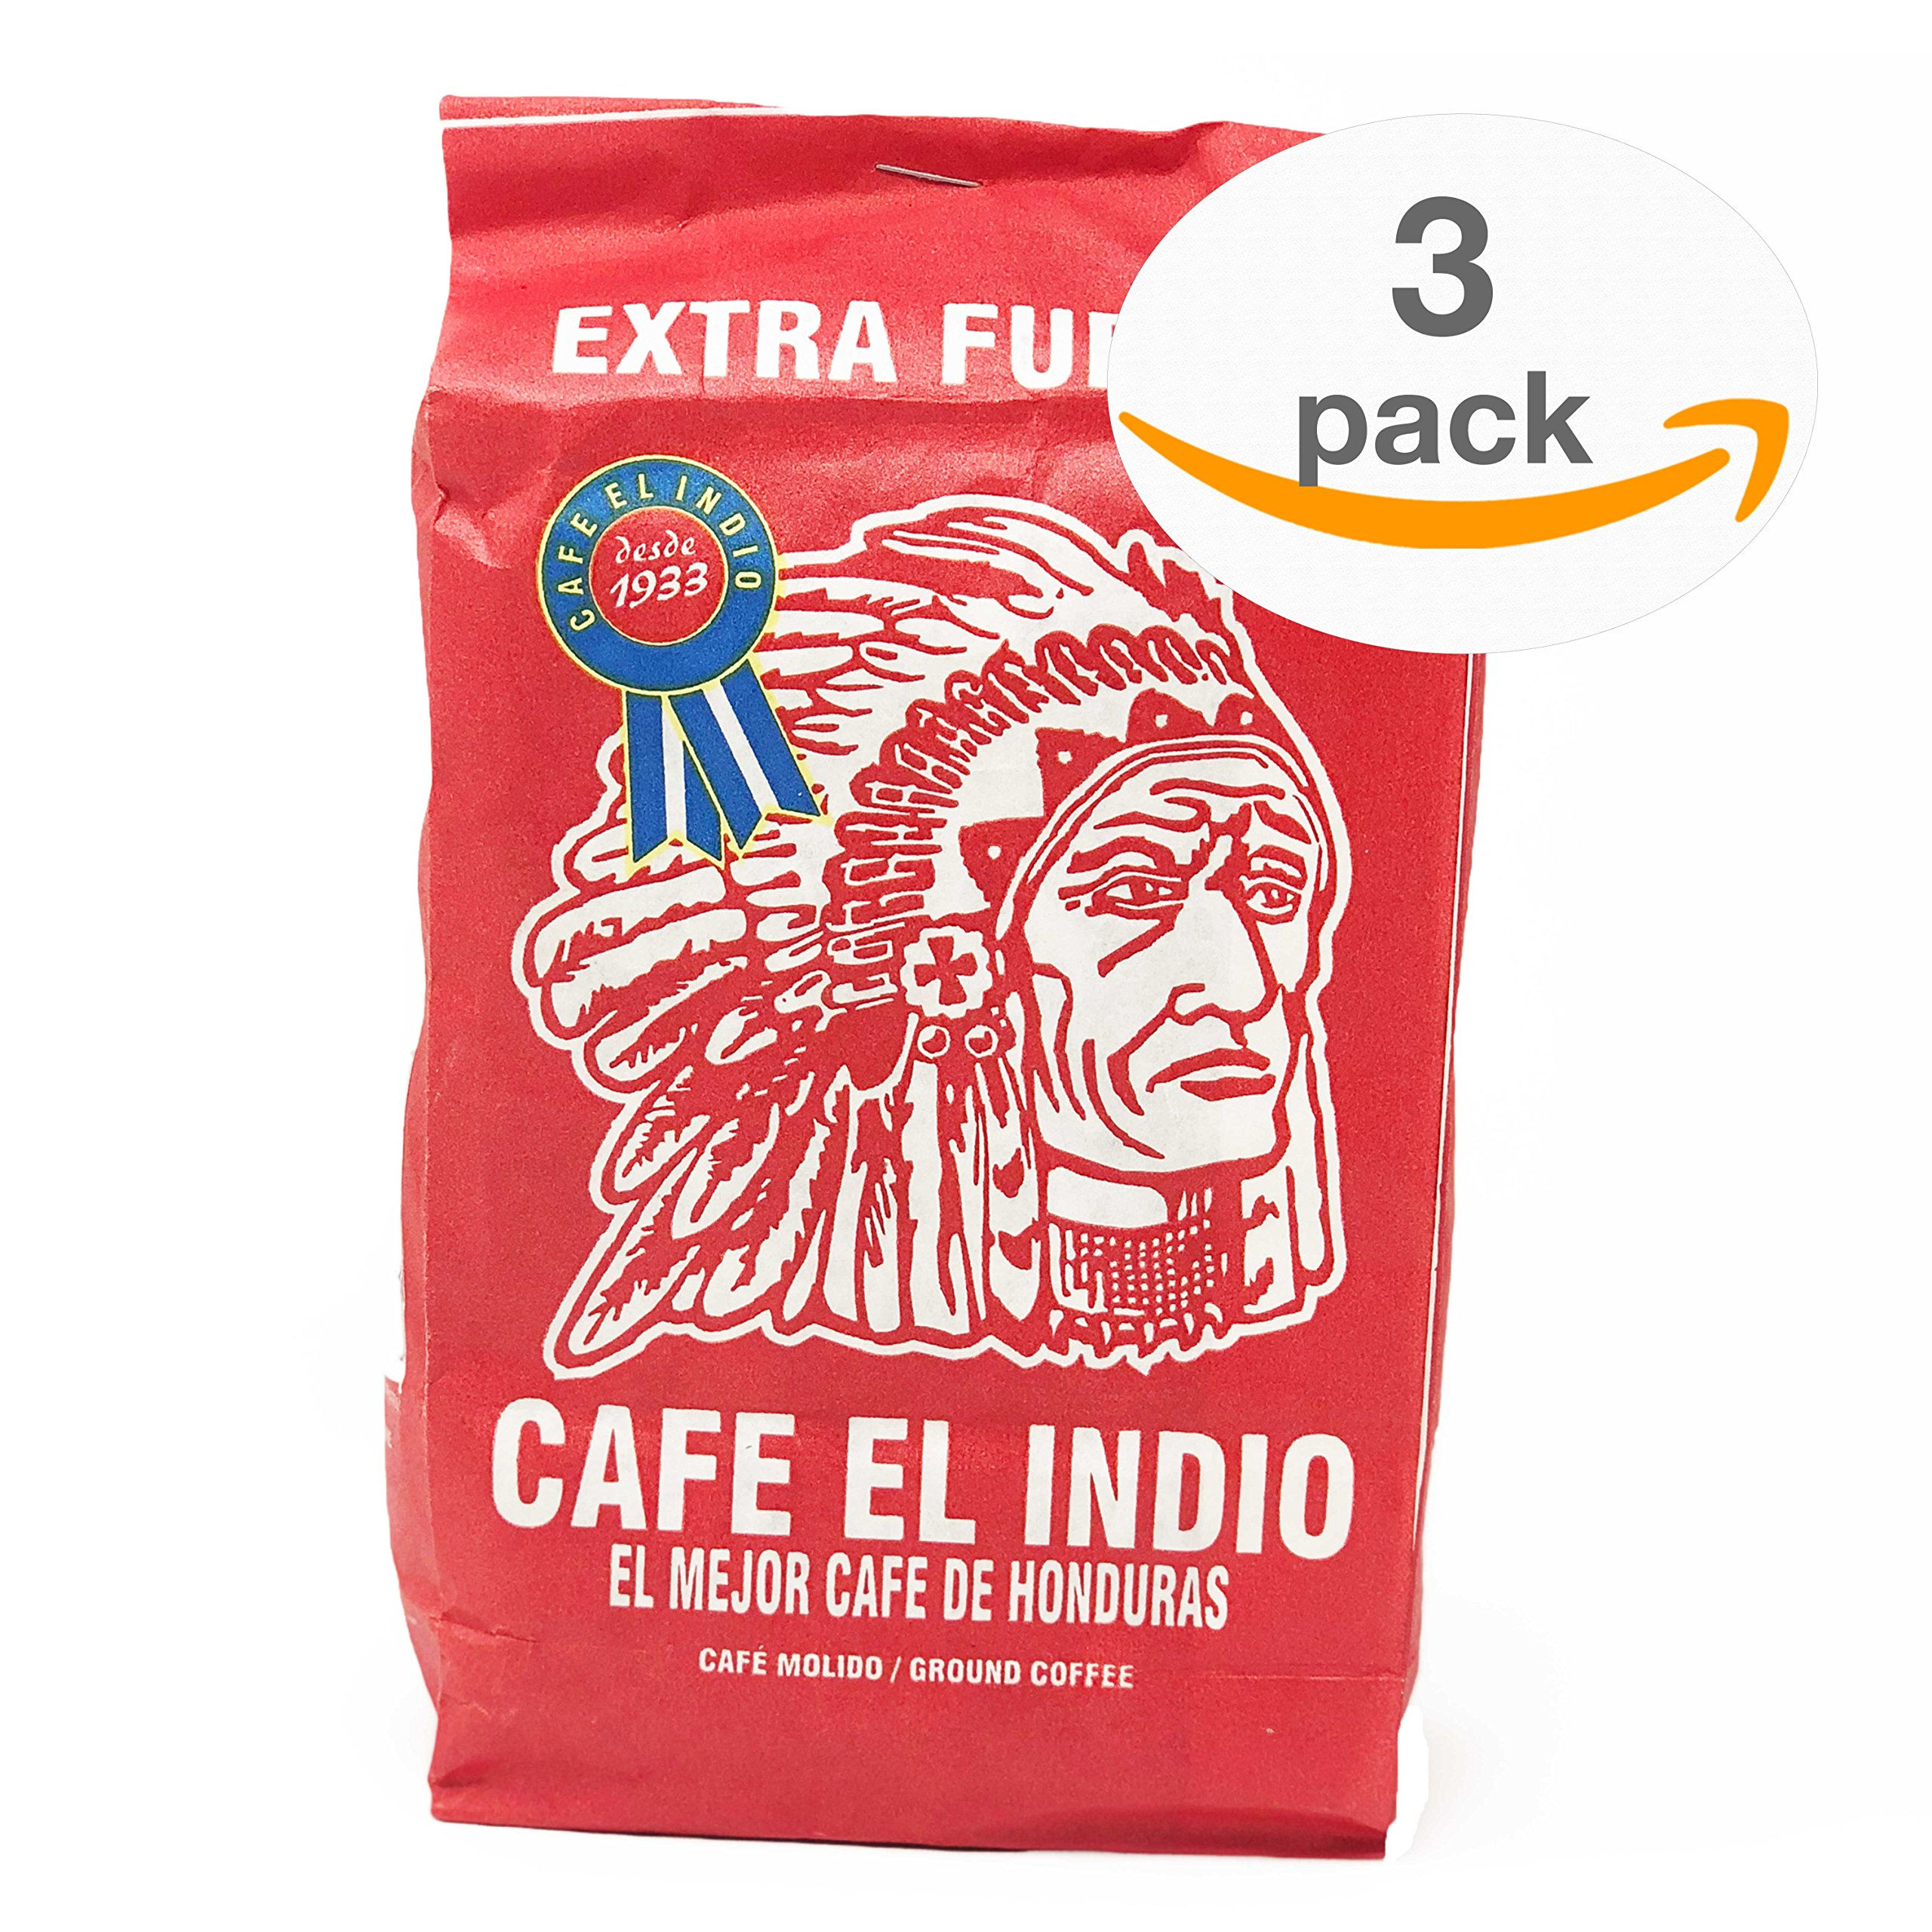 Cafe Molido - Coffee El Indio Extra Fuerte   Ground Strong Coffee From Honduras   16 individual bags total of 1 ounce each   Guaranteed Best Coffee 100% Customer Satisfaction